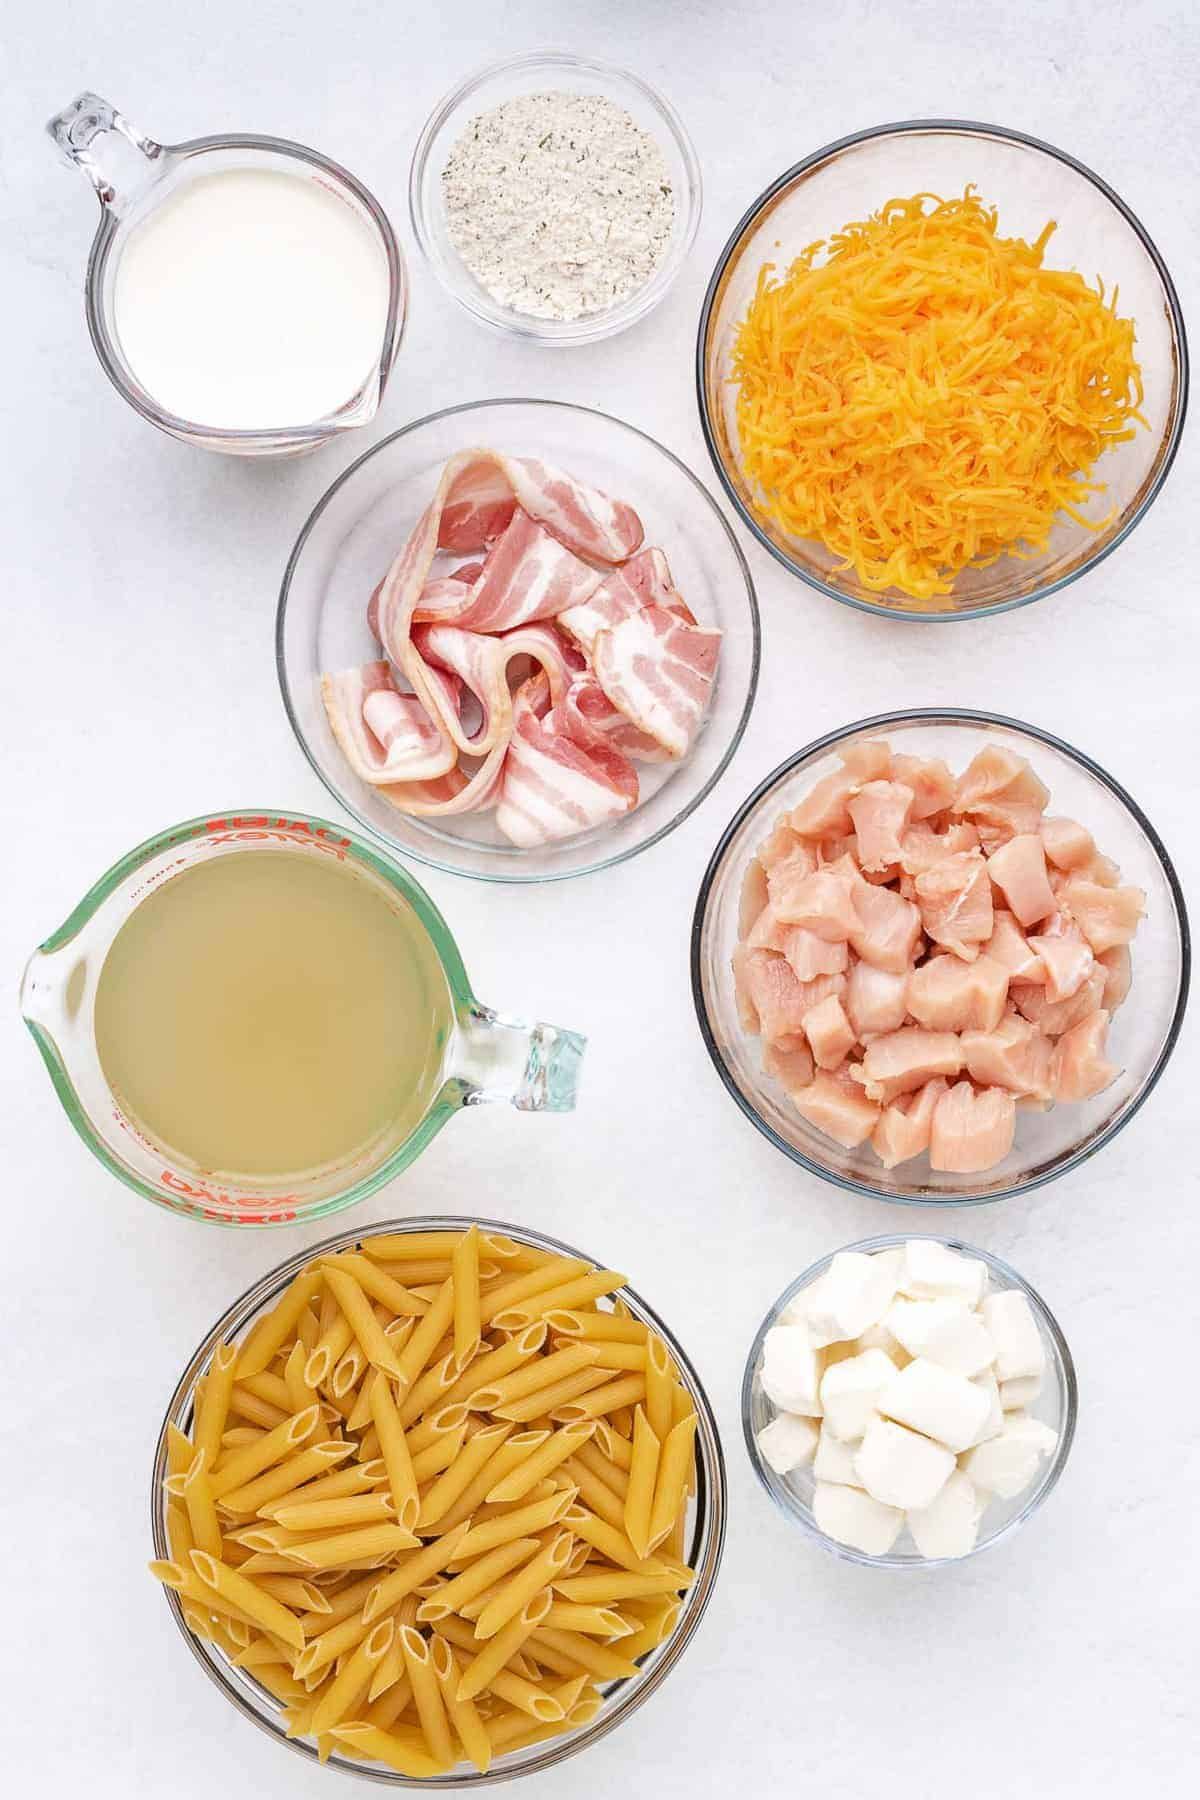 Overhead view of glass bowls of ingredients: pasta, chicken, bacon, cream cheese, cream, ranch, broth.